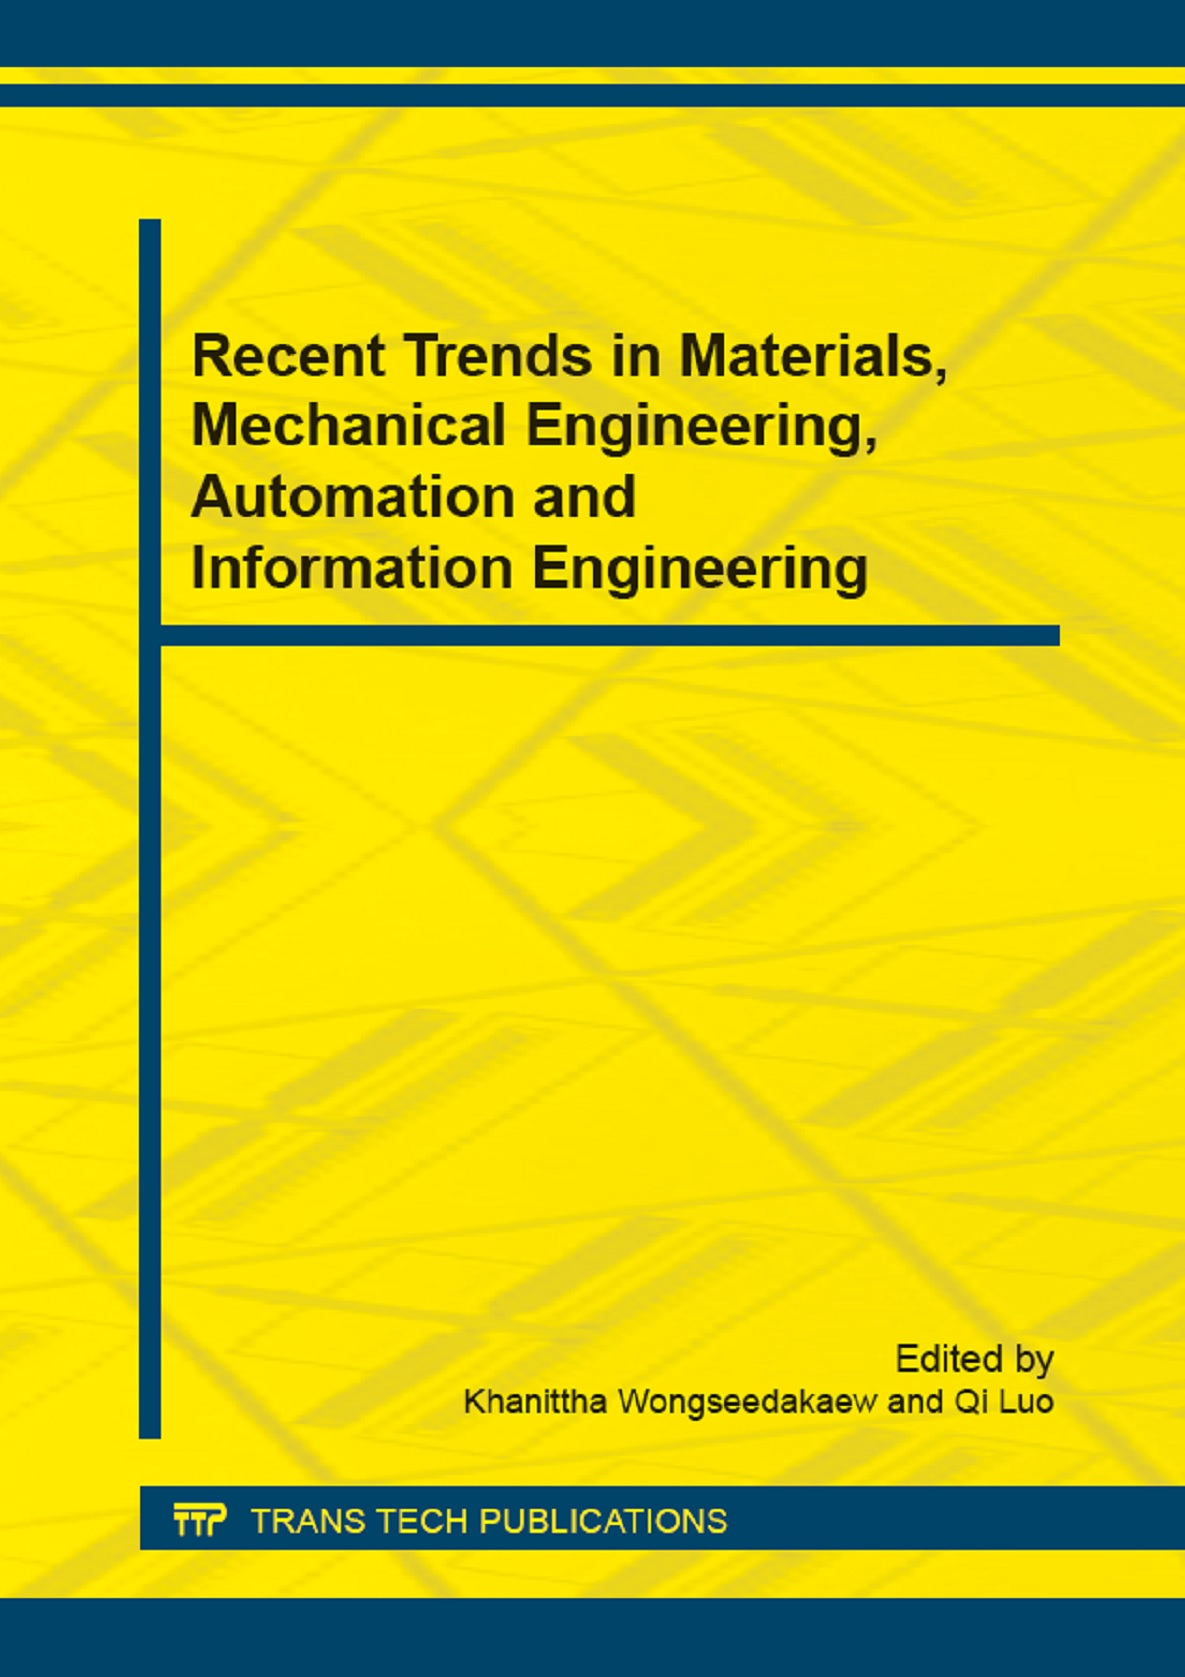 Recent Trends in Materials, Mechanical Engineering, Automation and Information Engineering